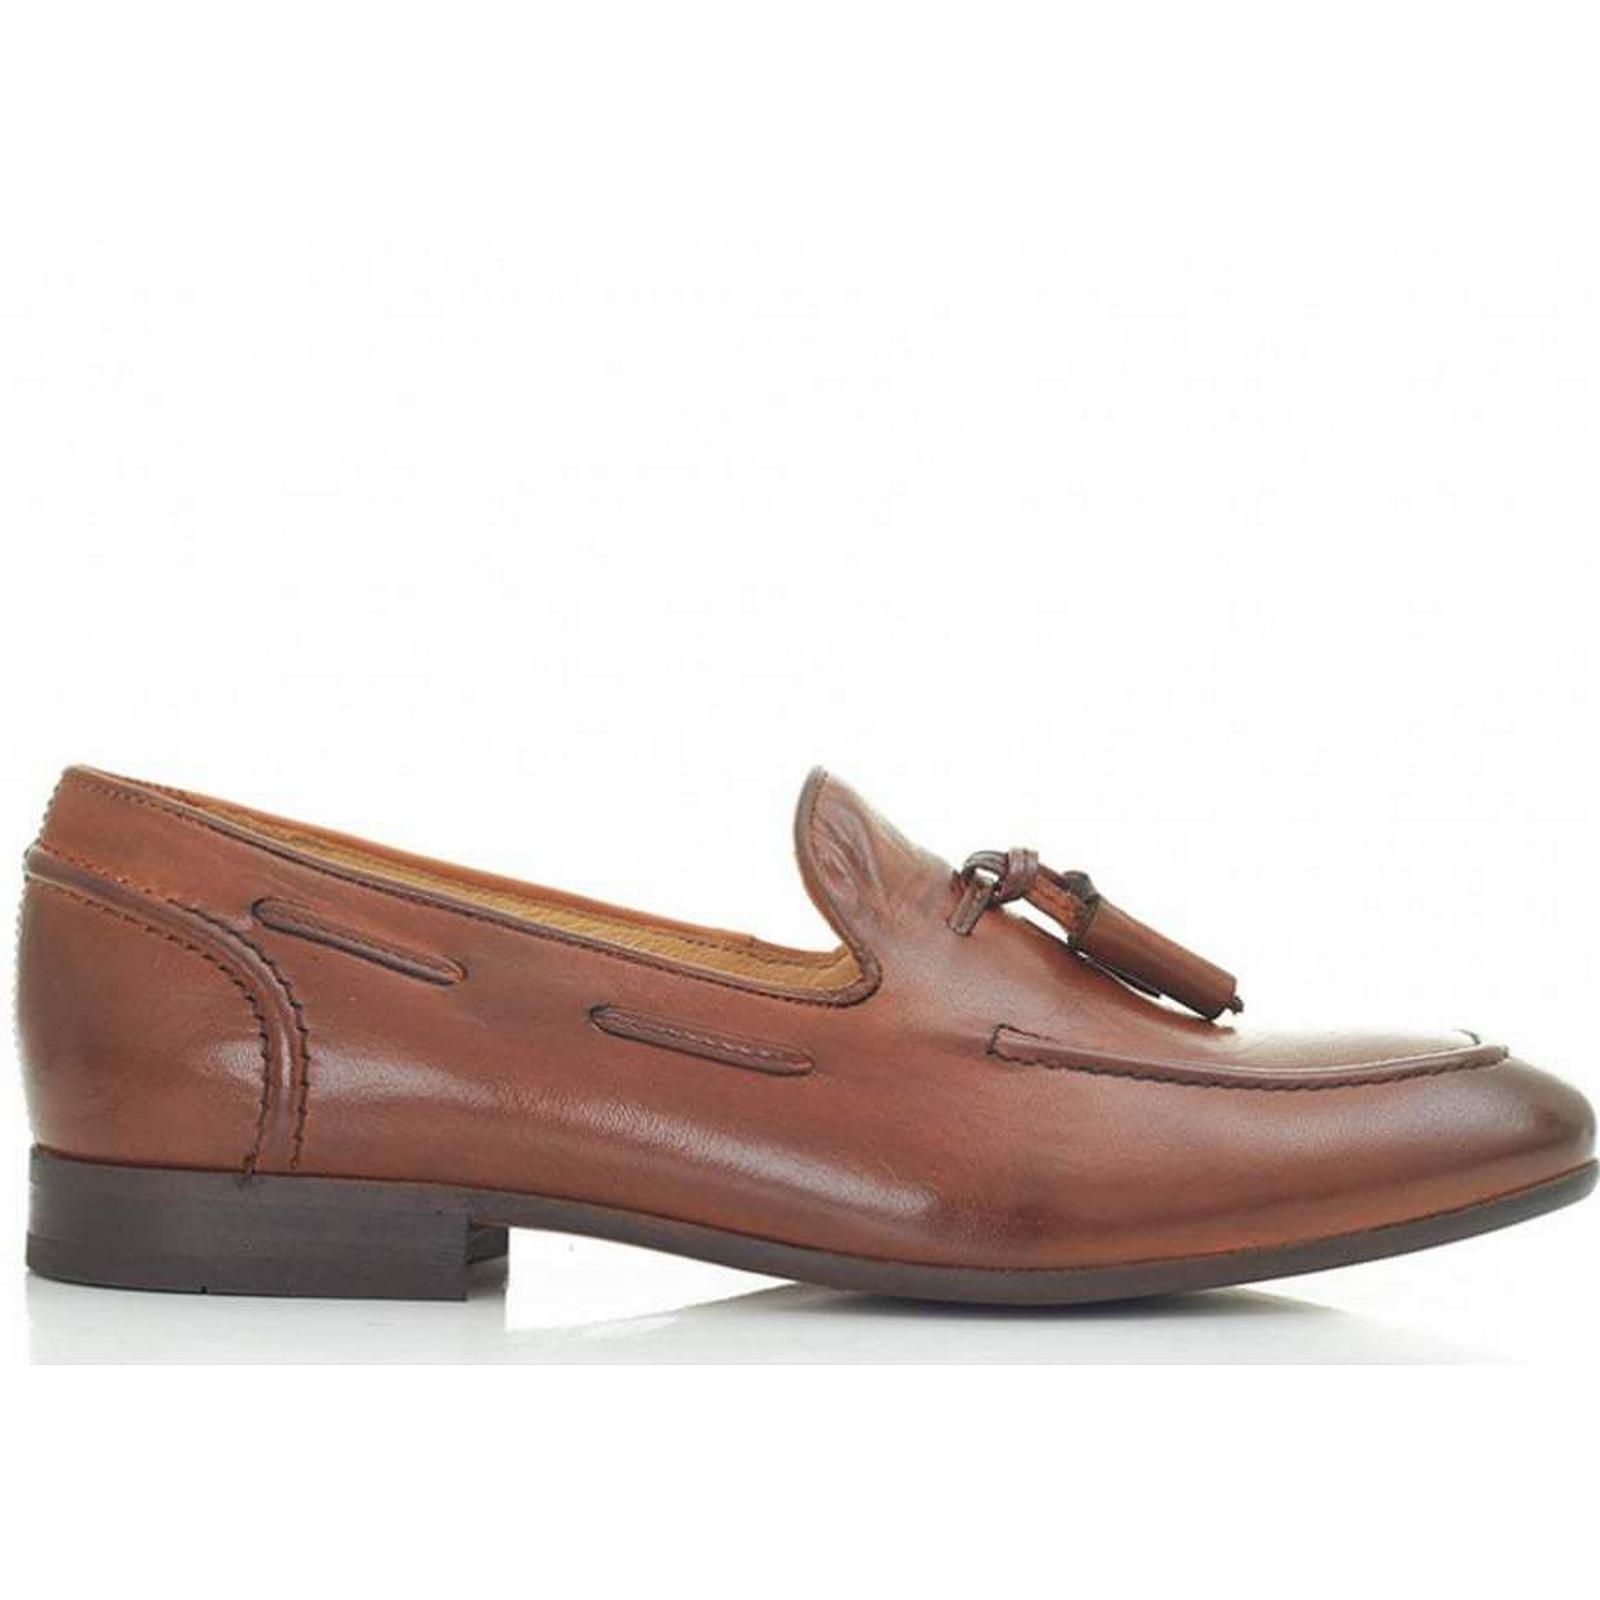 H By Hudson Pierre Tassel Loafers 7 Colour: Calf Tan, Size: 7 Loafers 558549